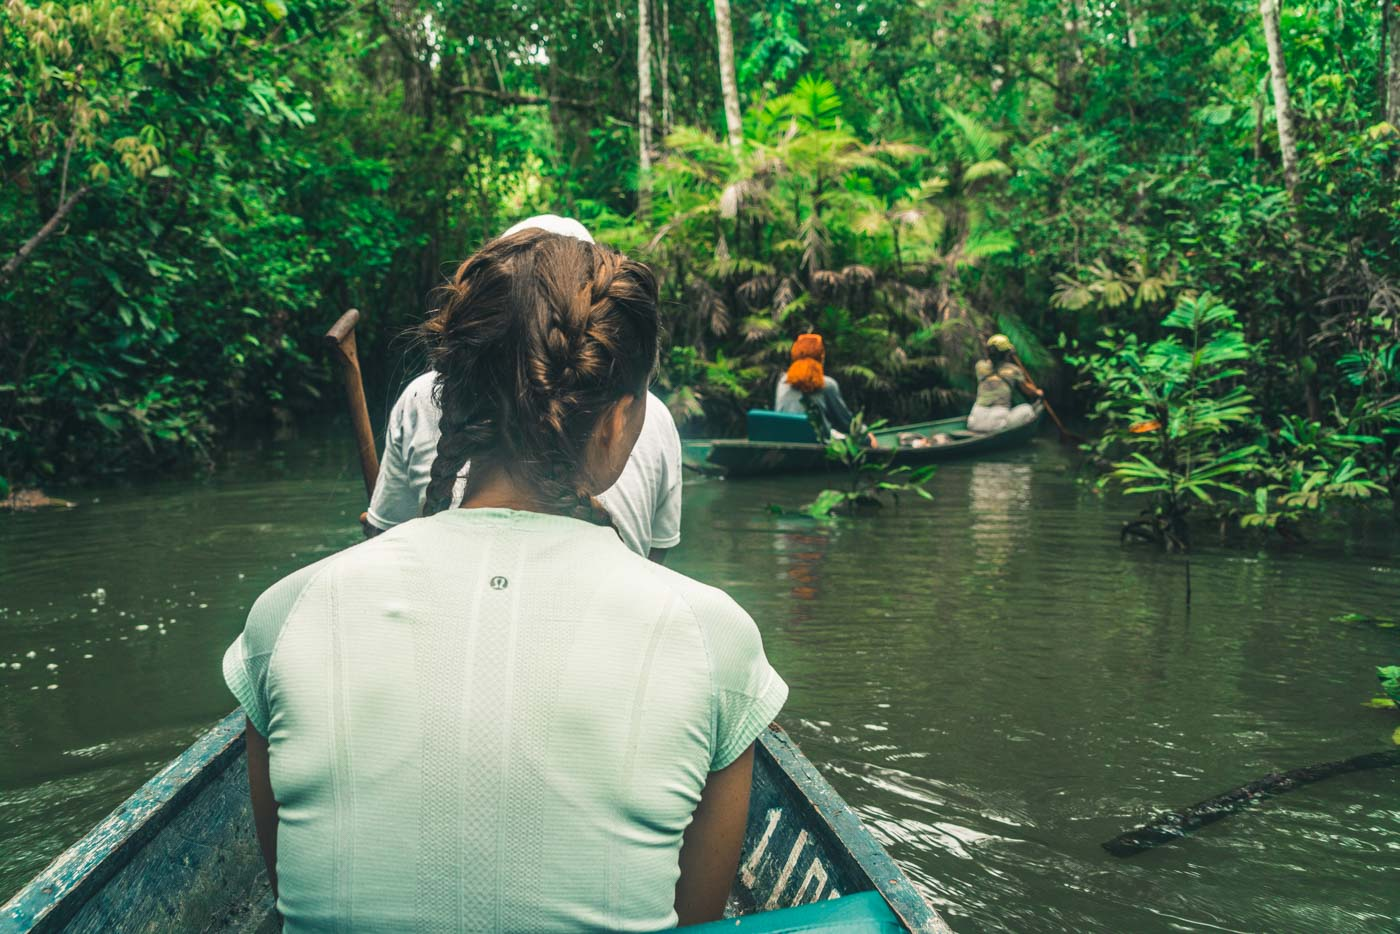 First day on the Tahuayo river in the Amazon